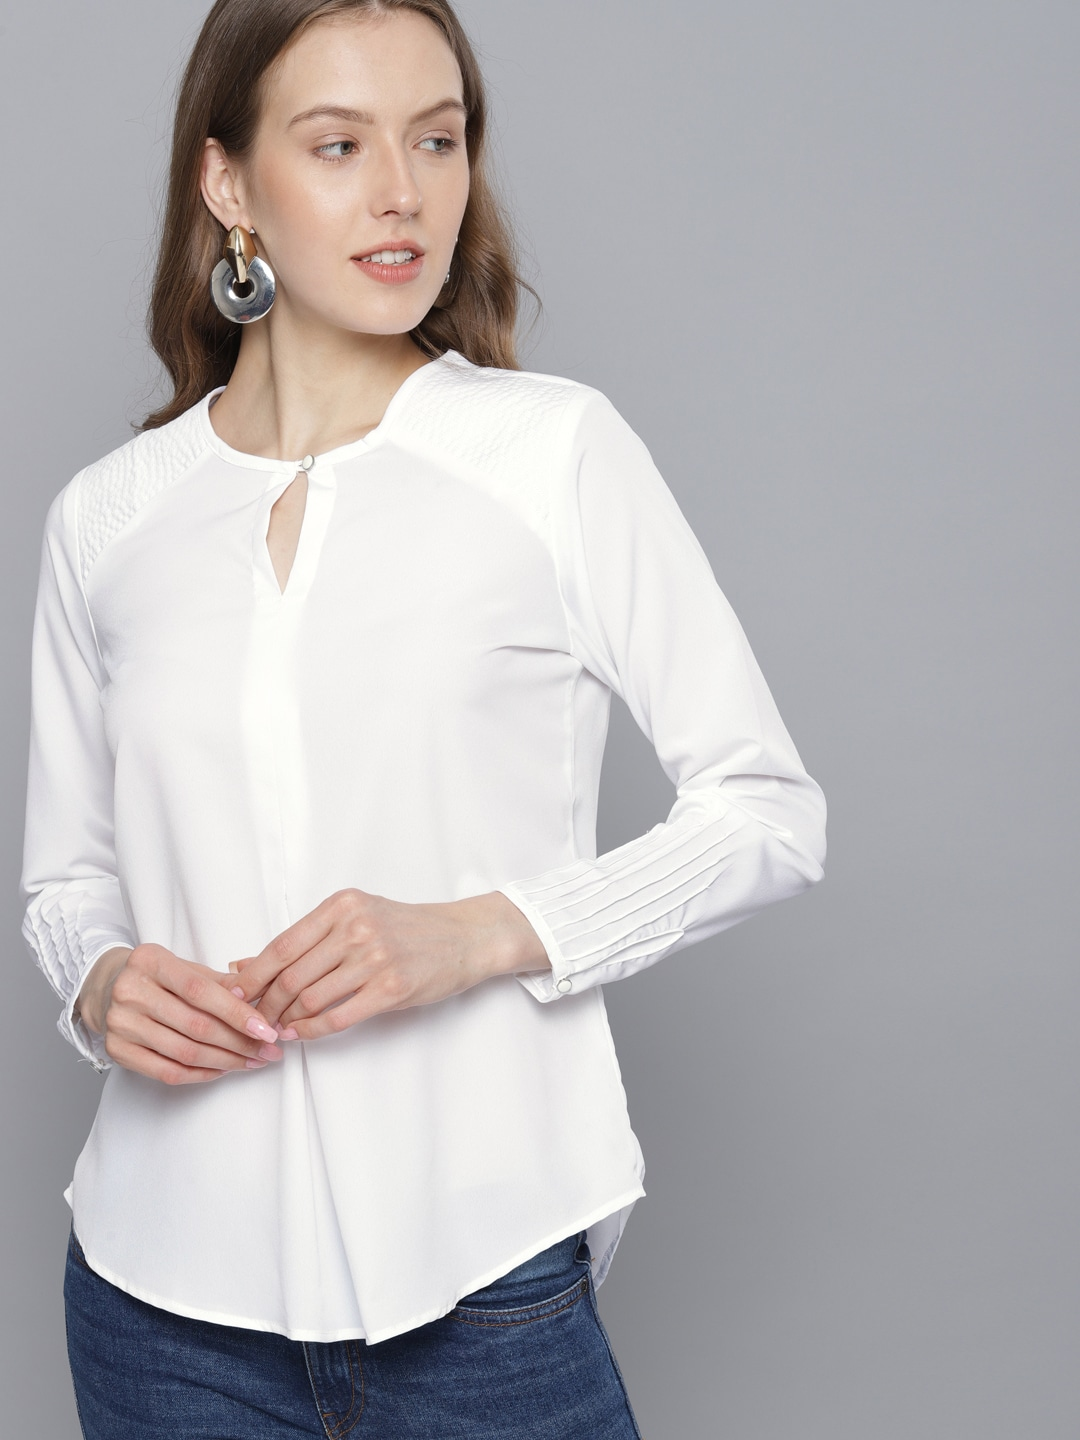 be3a15e02c8c88 Palazzo Tops - Buy Palazzo Tops online in India